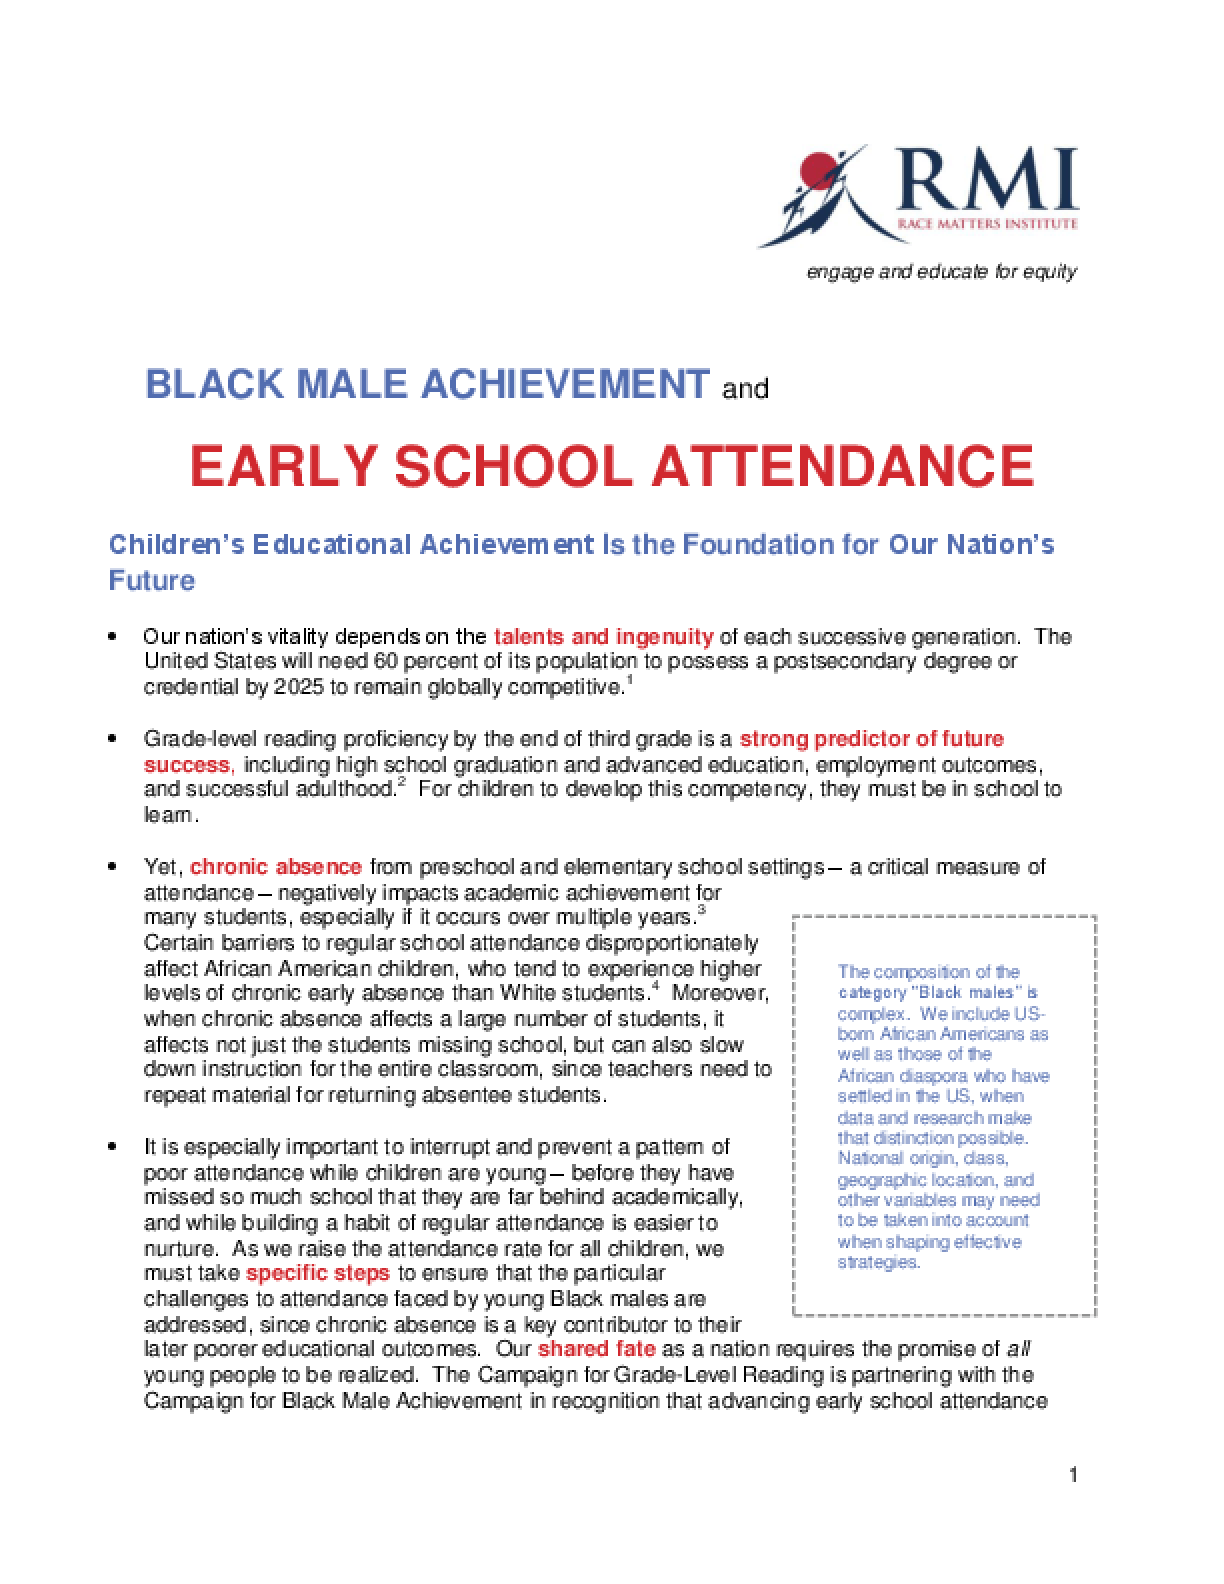 Black Male Achievement and Early School Attendance